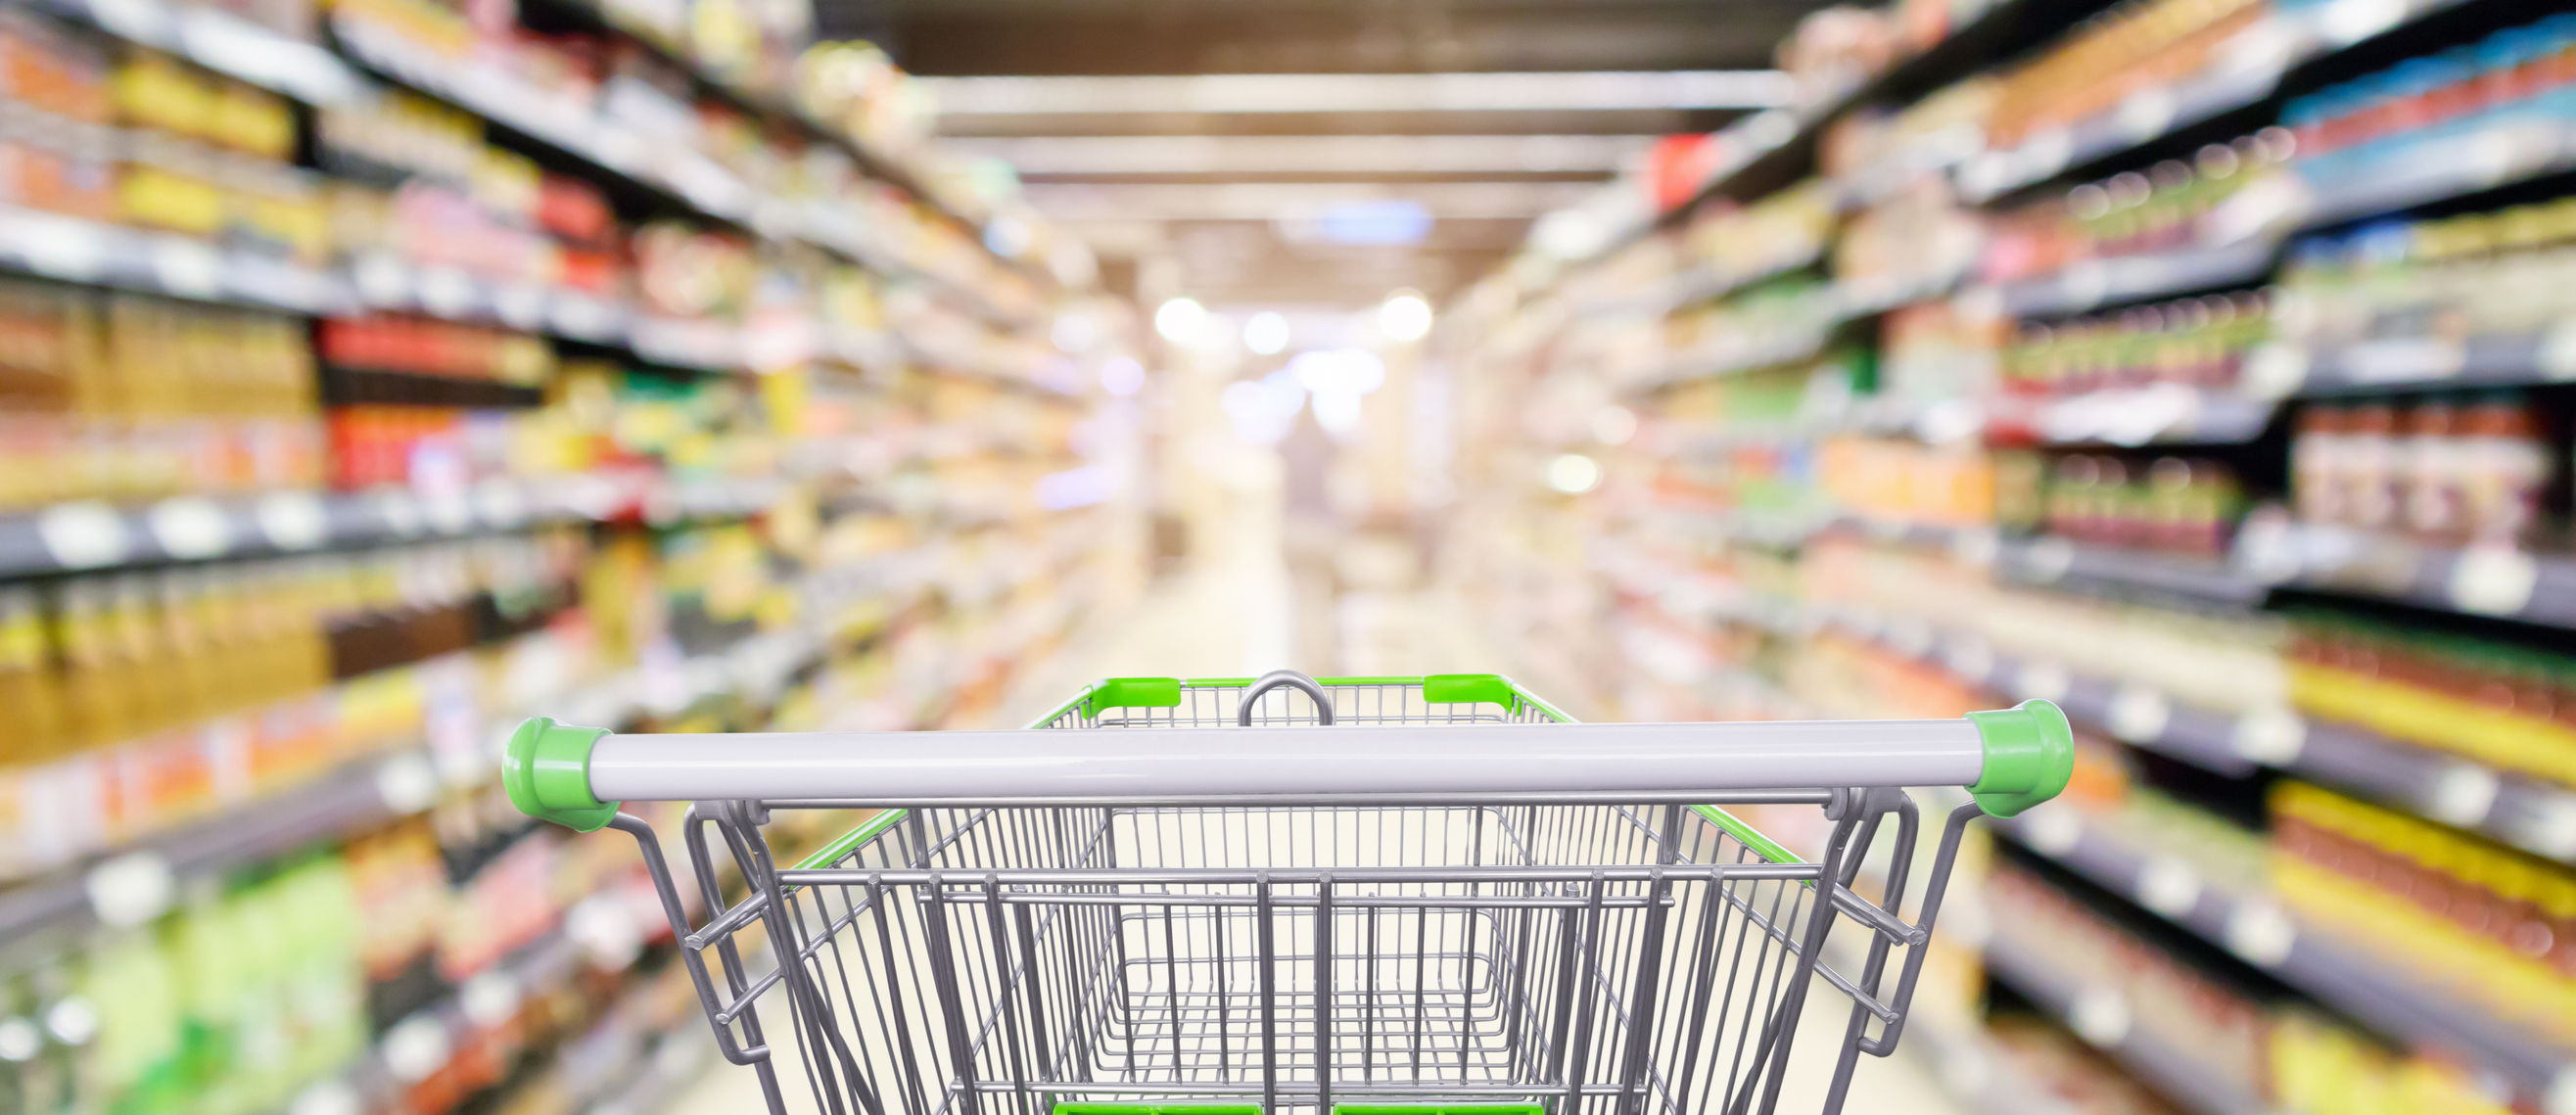 Featured image for 5 Covid-19 grocery retail trends that will stick post-pandemic